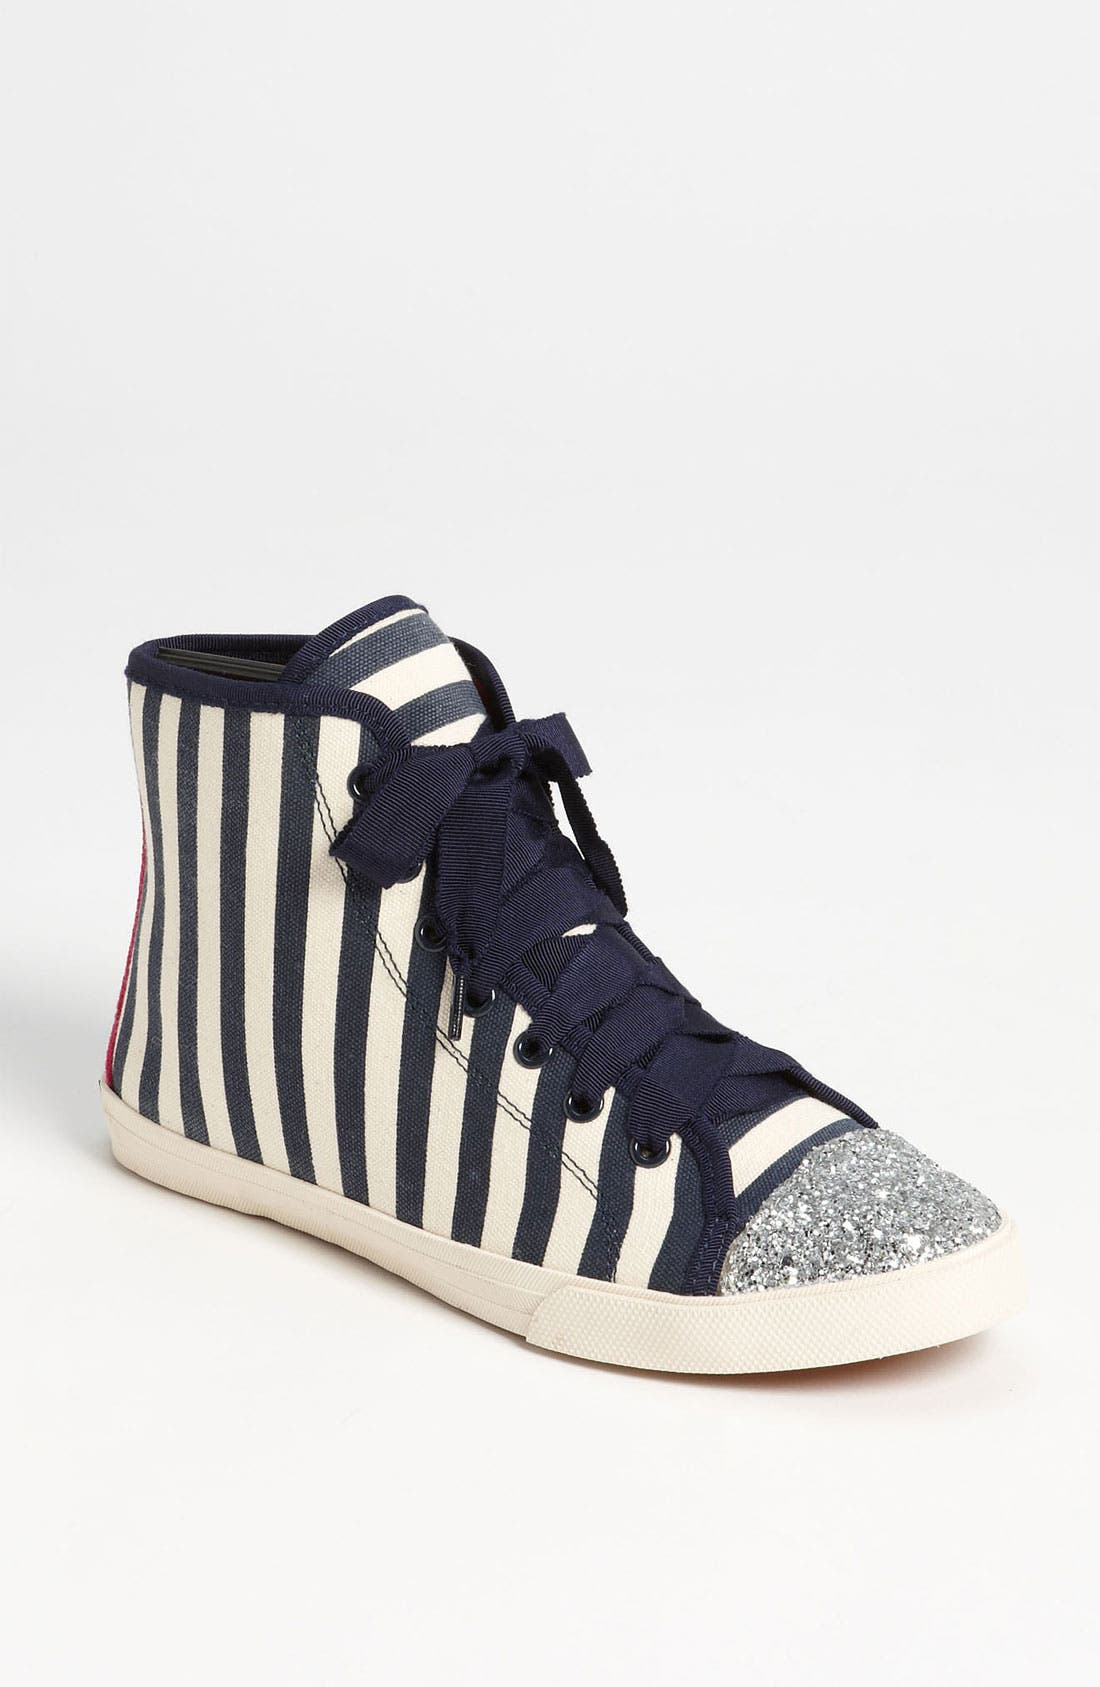 Alternate Image 1 Selected - kate spade new york 'lorna' sneaker